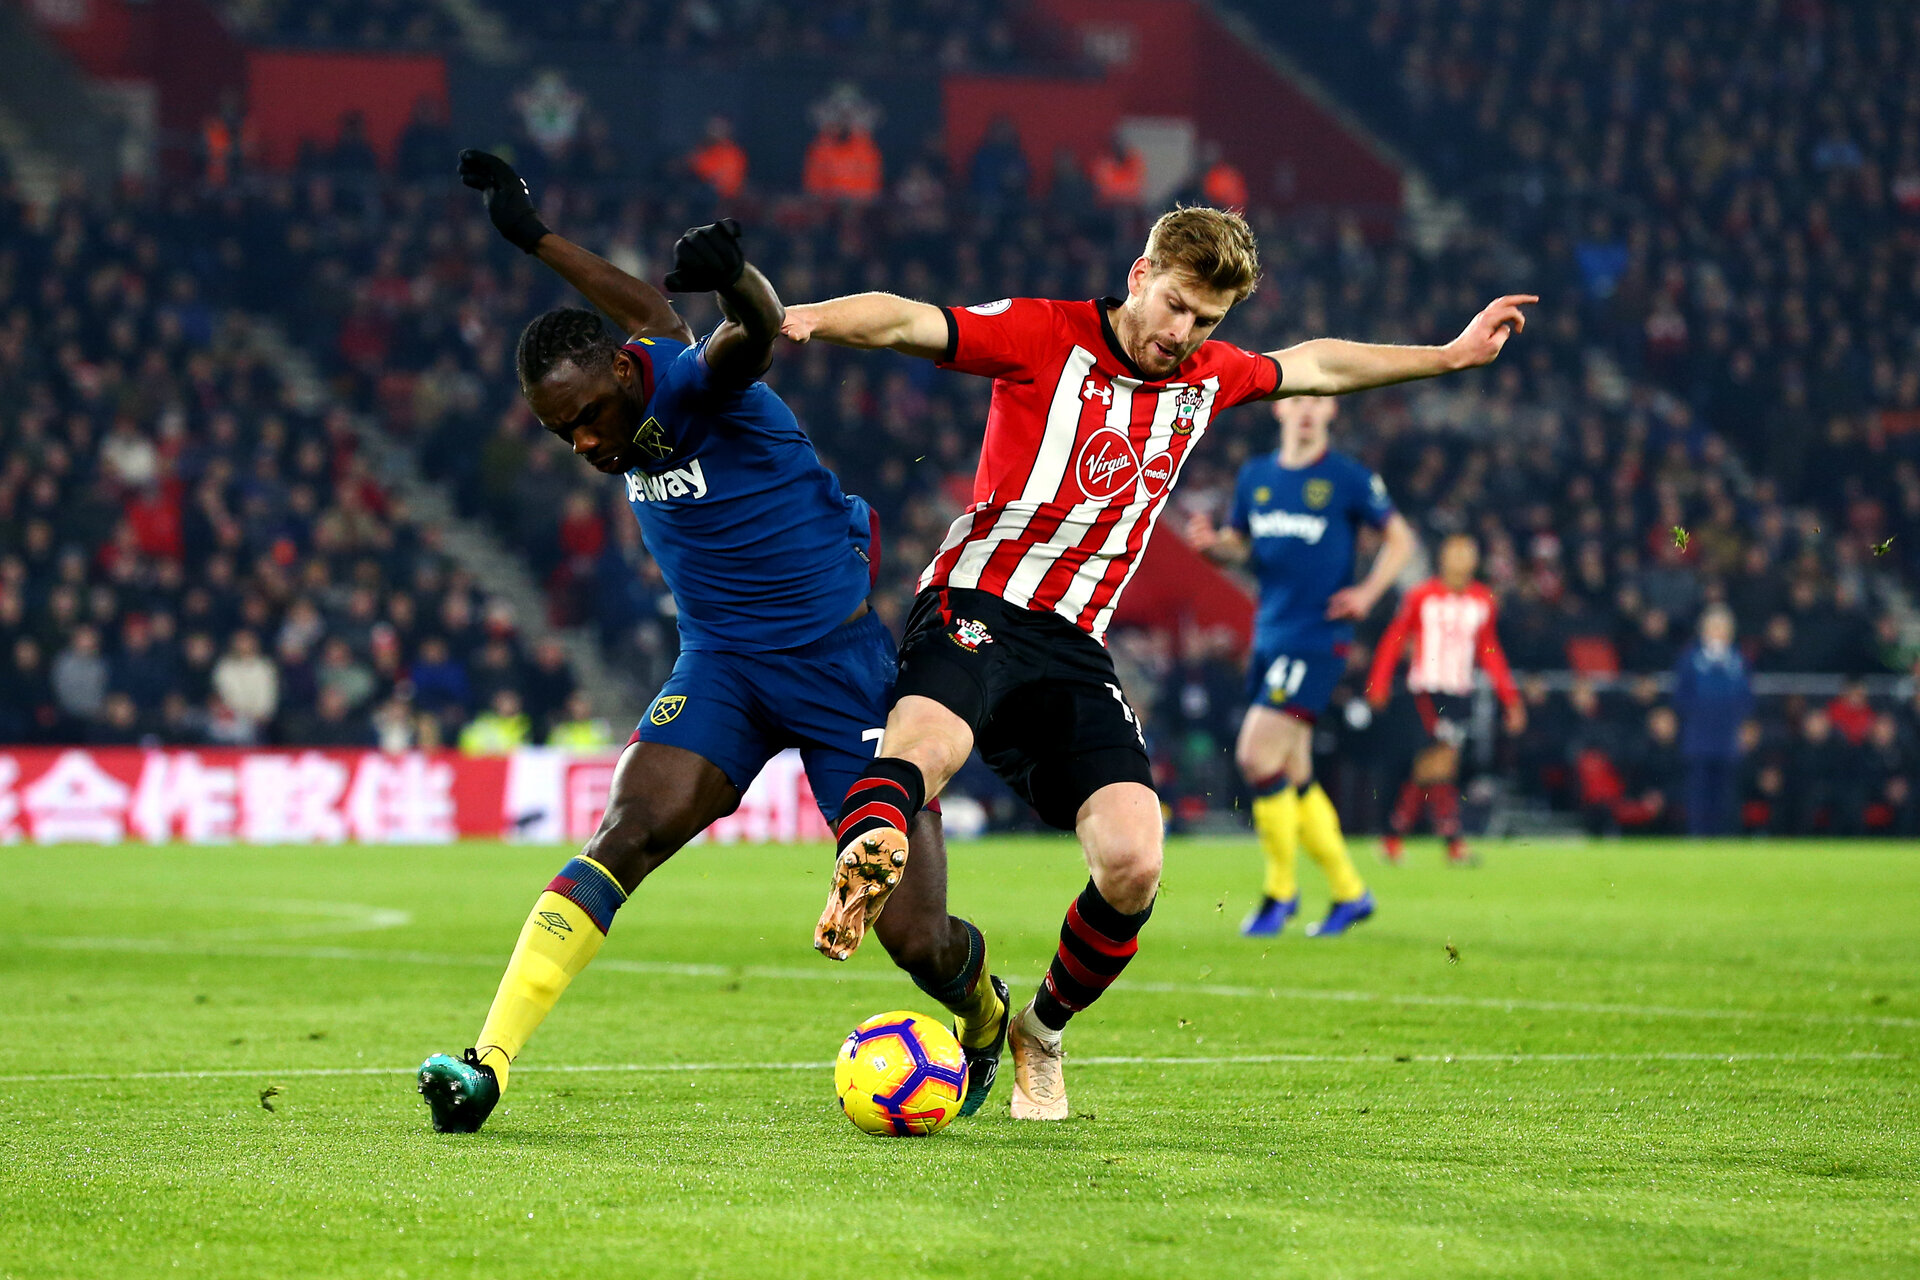 SOUTHAMPTON, ENGLAND - DECEMBER 27: Stuart Armstrong of Southampton FC (right) during the Premier League match between Southampton FC and West Ham United at St Mary's Stadium on December 27, 2018 in Southampton, United Kingdom. (Photo by James Bridle - Southampton FC/Southampton FC via Getty Images)